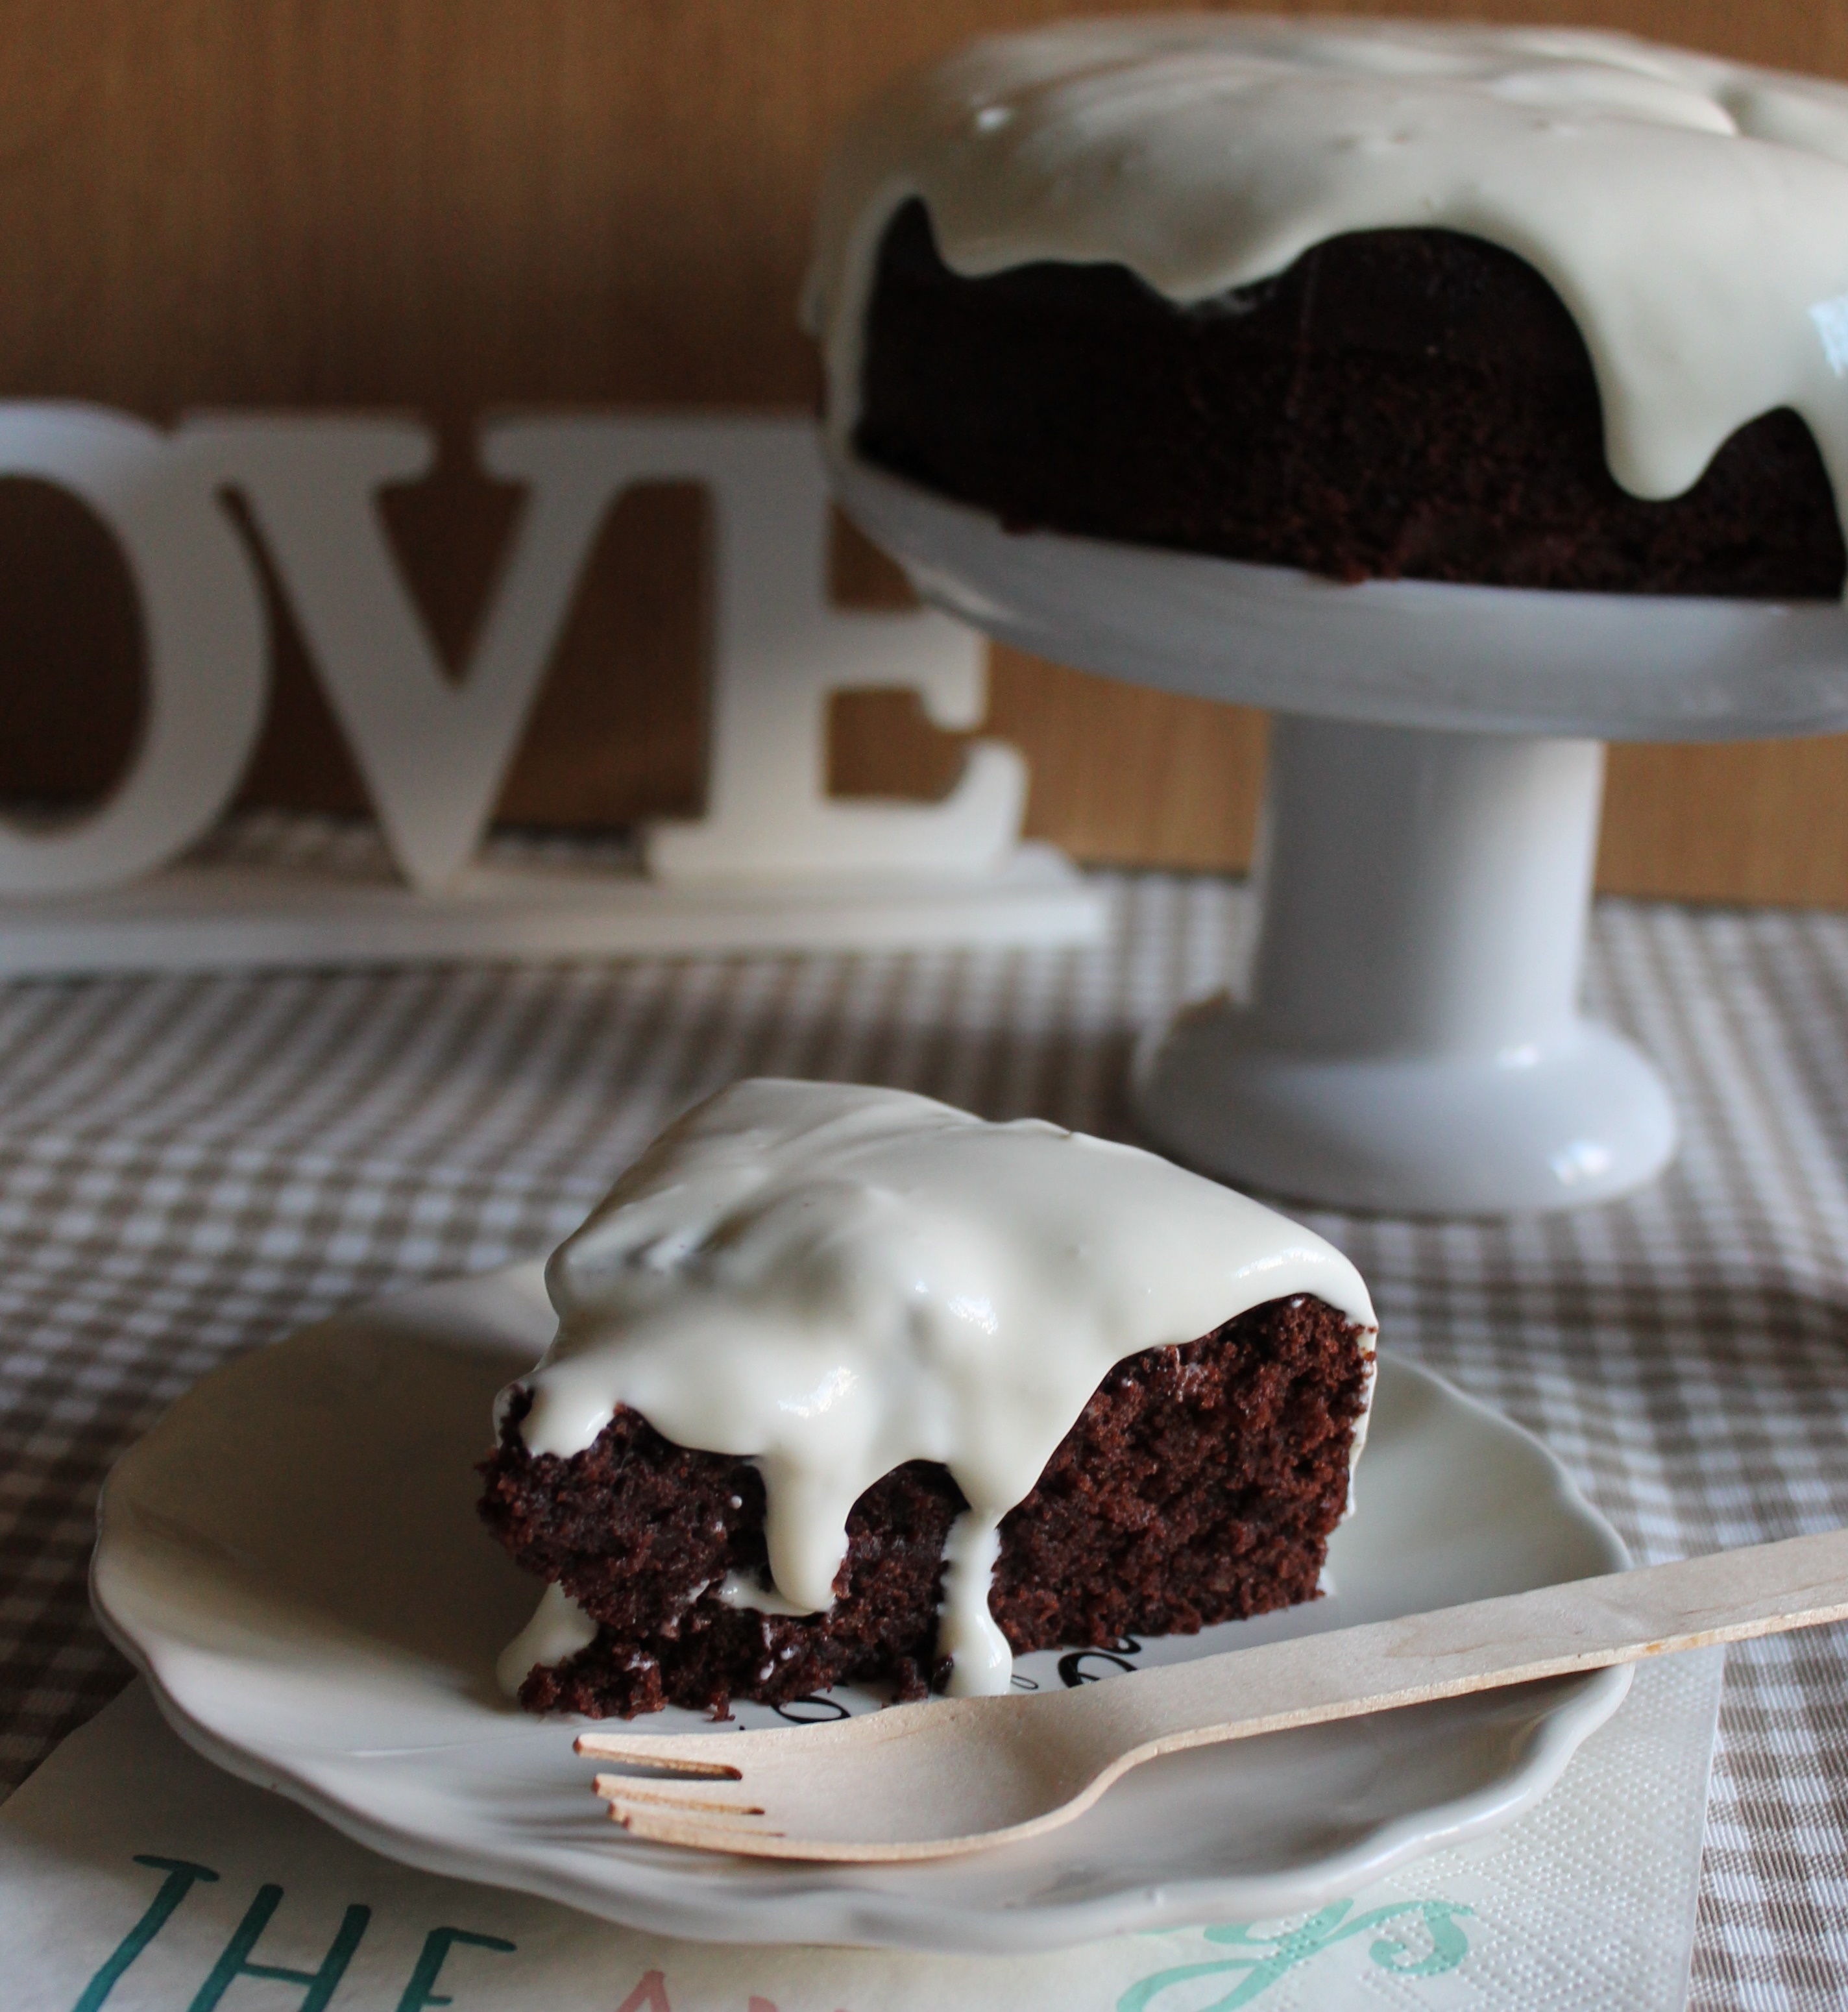 Canal Cocina Chocolate Chocolate Guinness Cake